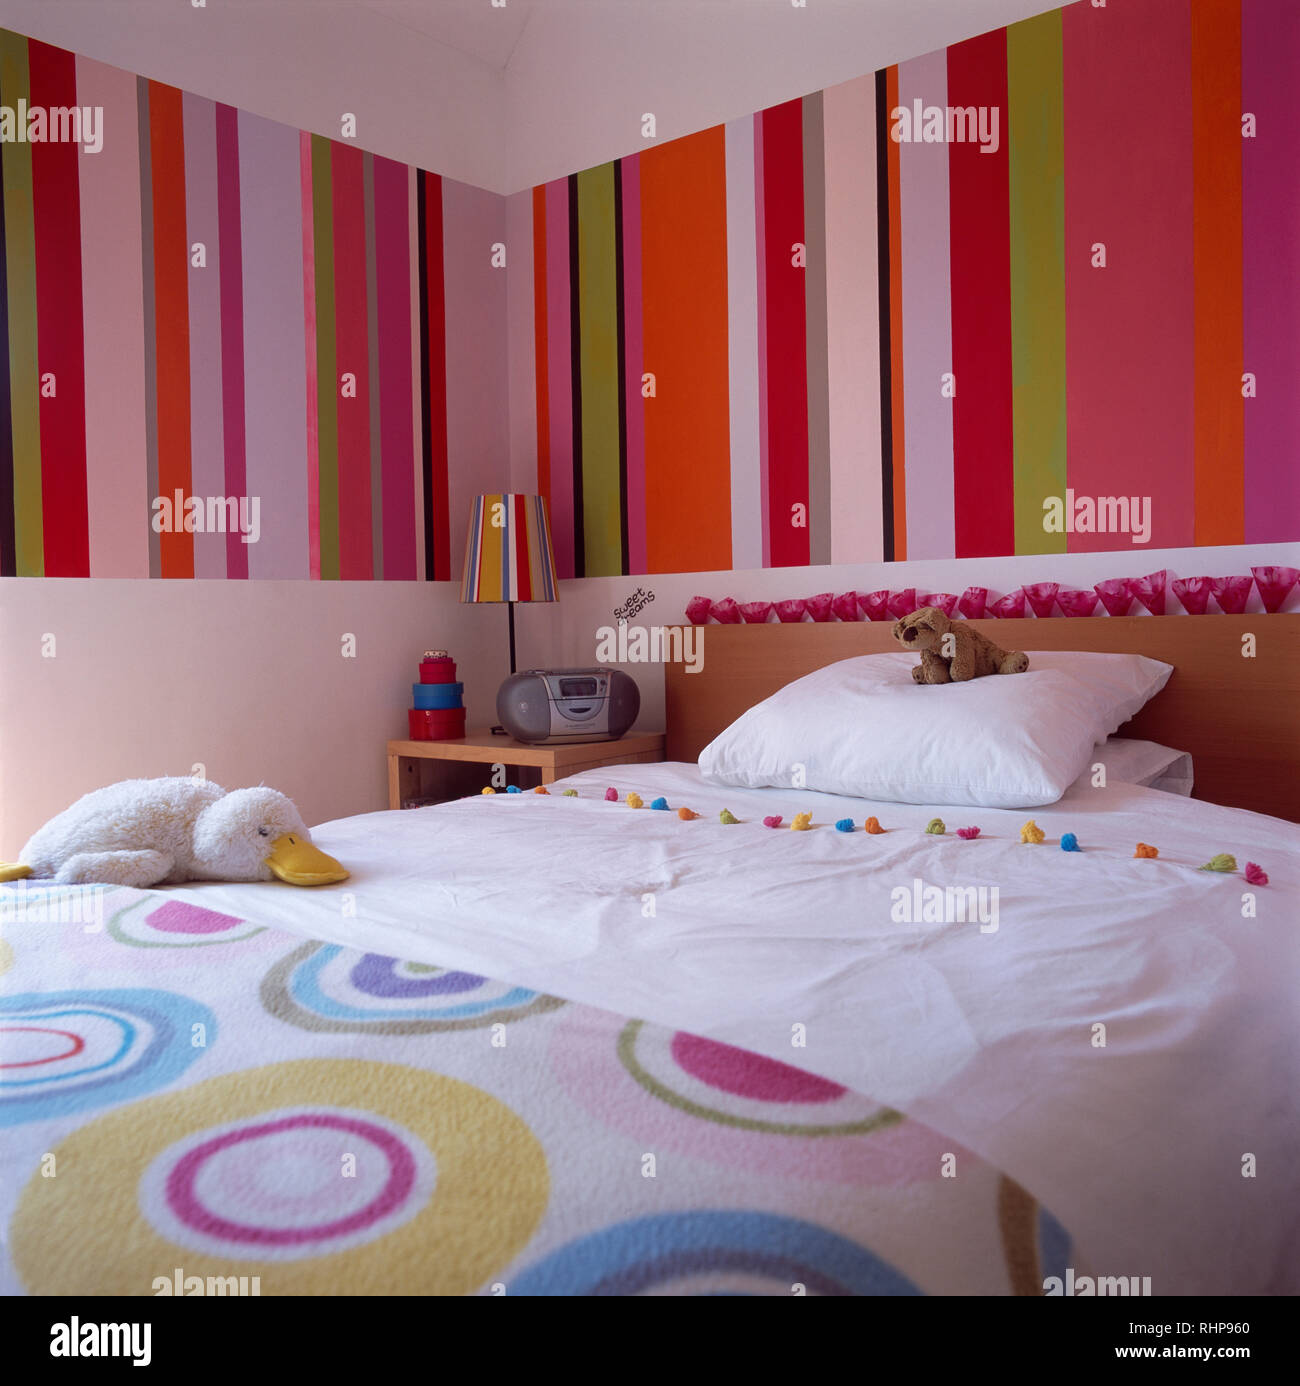 Colourful Striped Wallpaper In Modern Bedroom